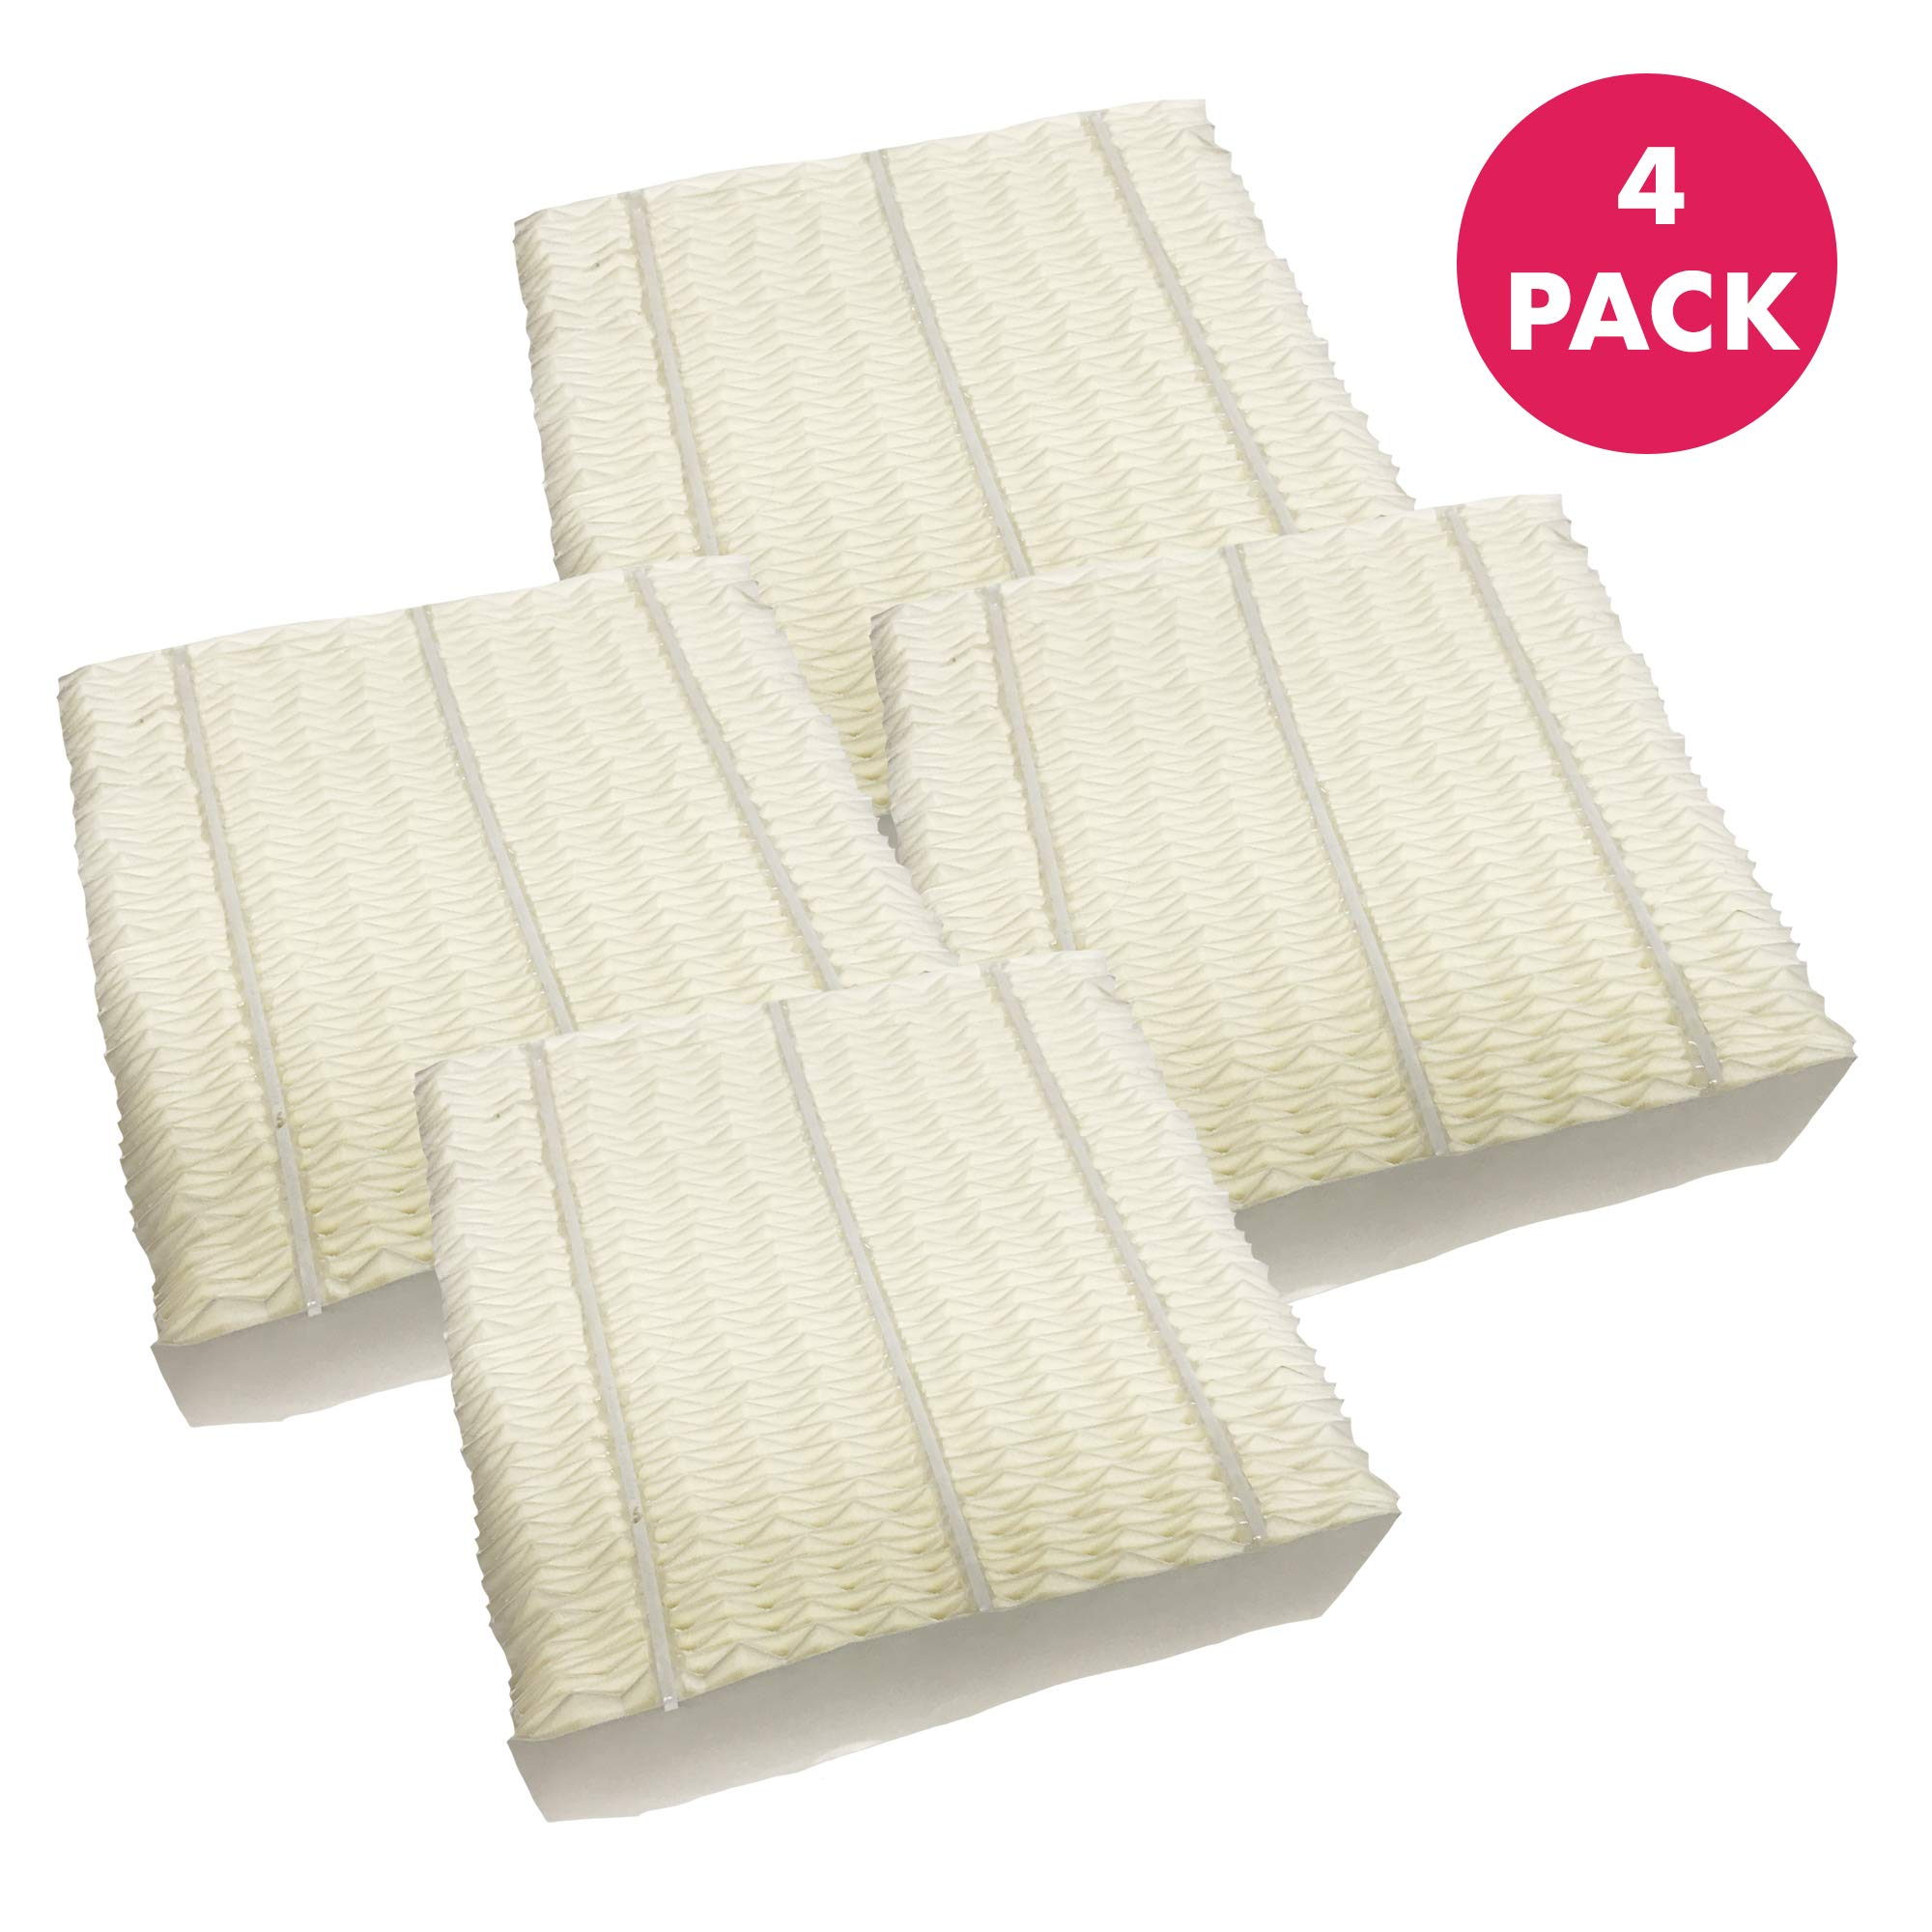 Think Crucial Replacement Humidifier Filters Compatible with Aircare 1043 Paper Wick Humidifier Filter Part #1043-10.8'' x 4.2'' x 12.5'' - Models Spacesaver 800,8000 Series Console,Bulk Pack (4 Pack)